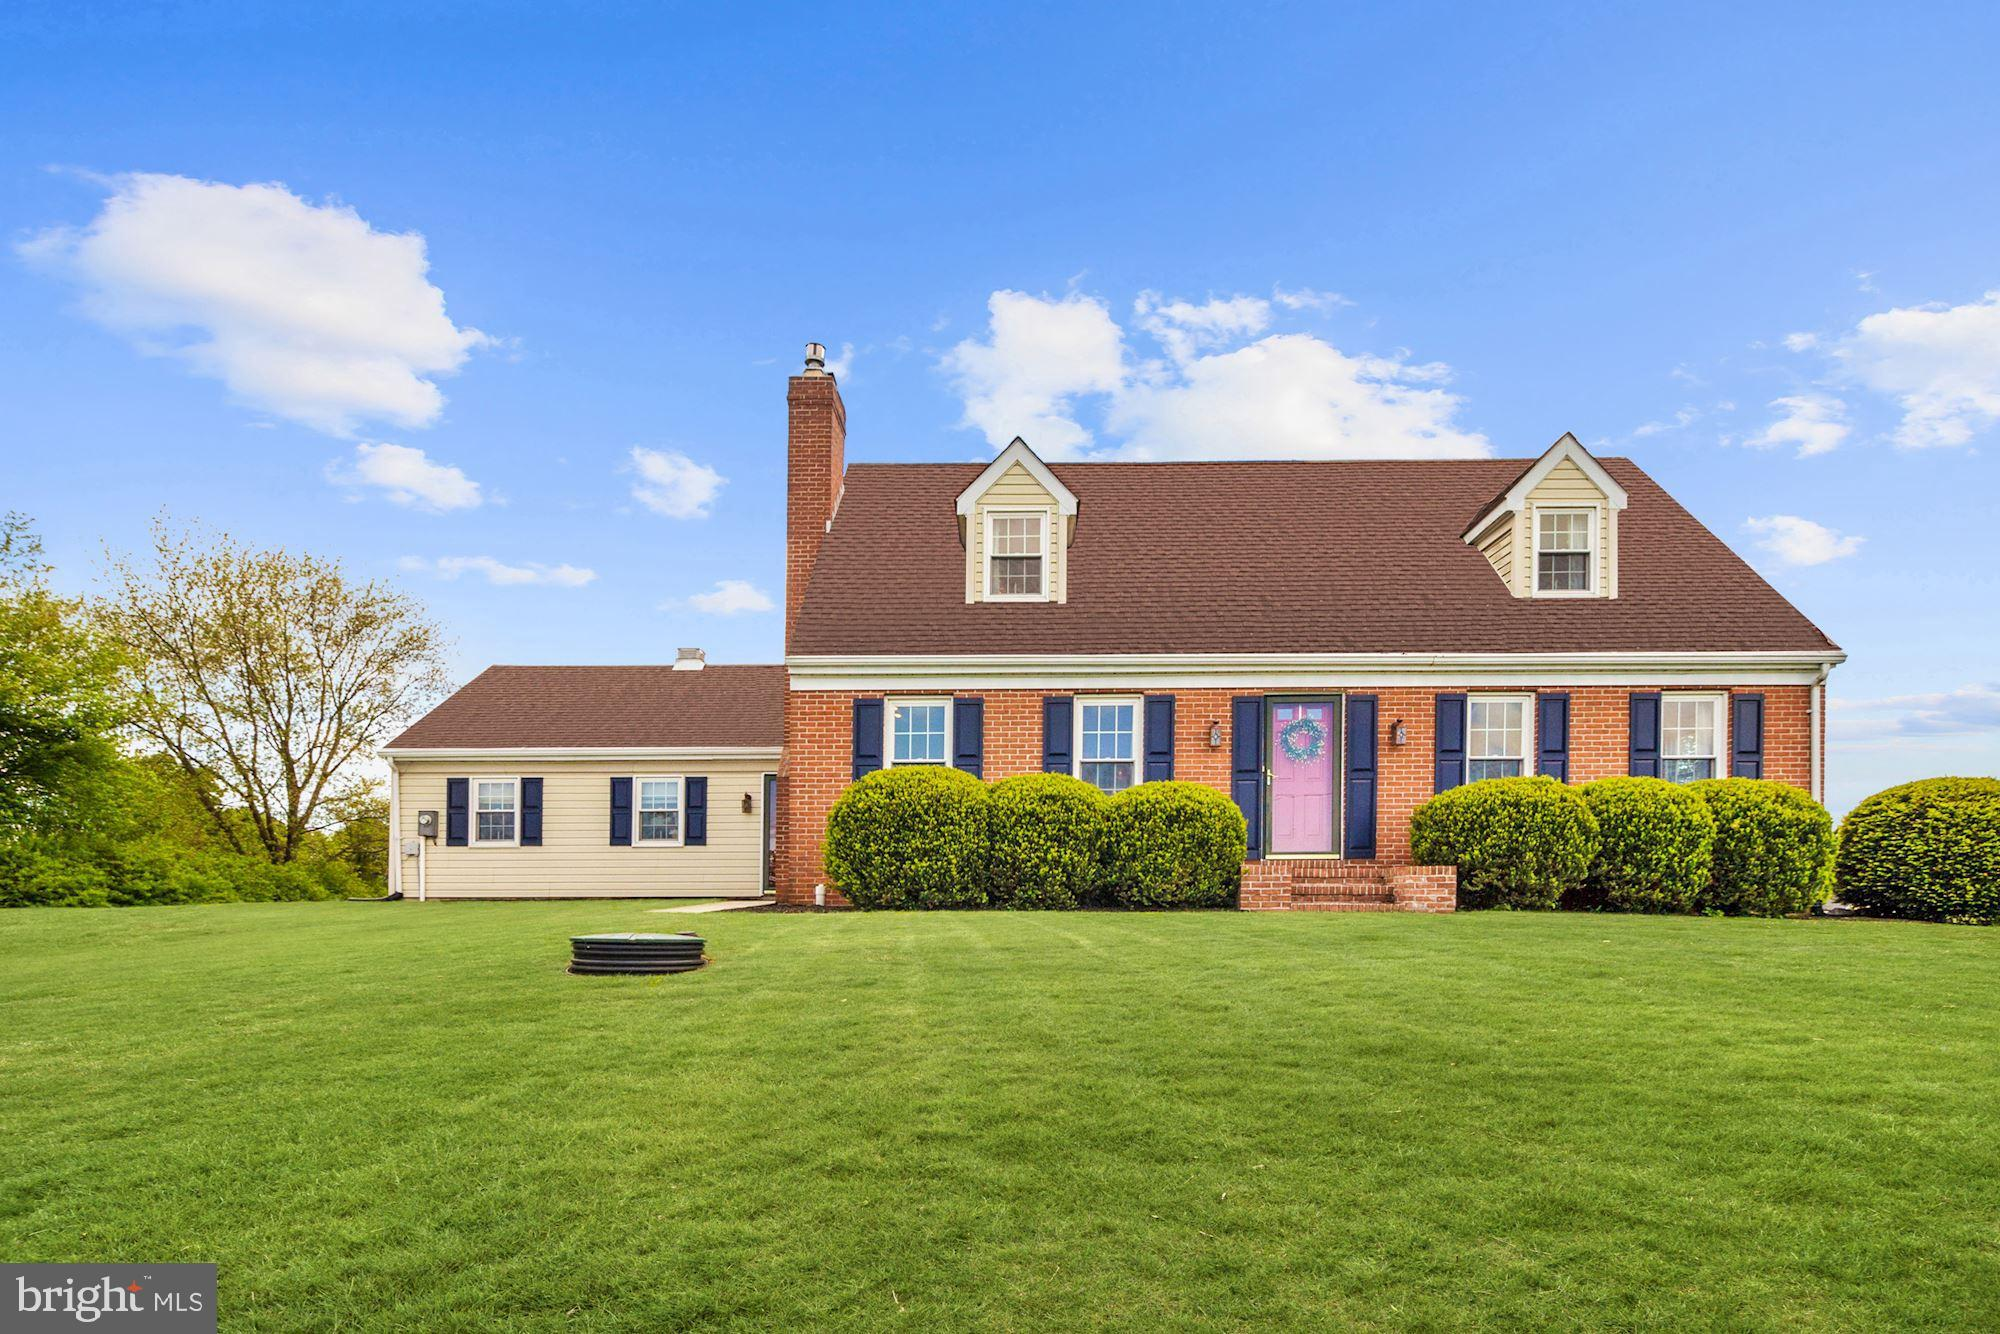 Gorgeous renovated colonial situated on 1.25 acres offering hardwood floors, crown moldings, and sun